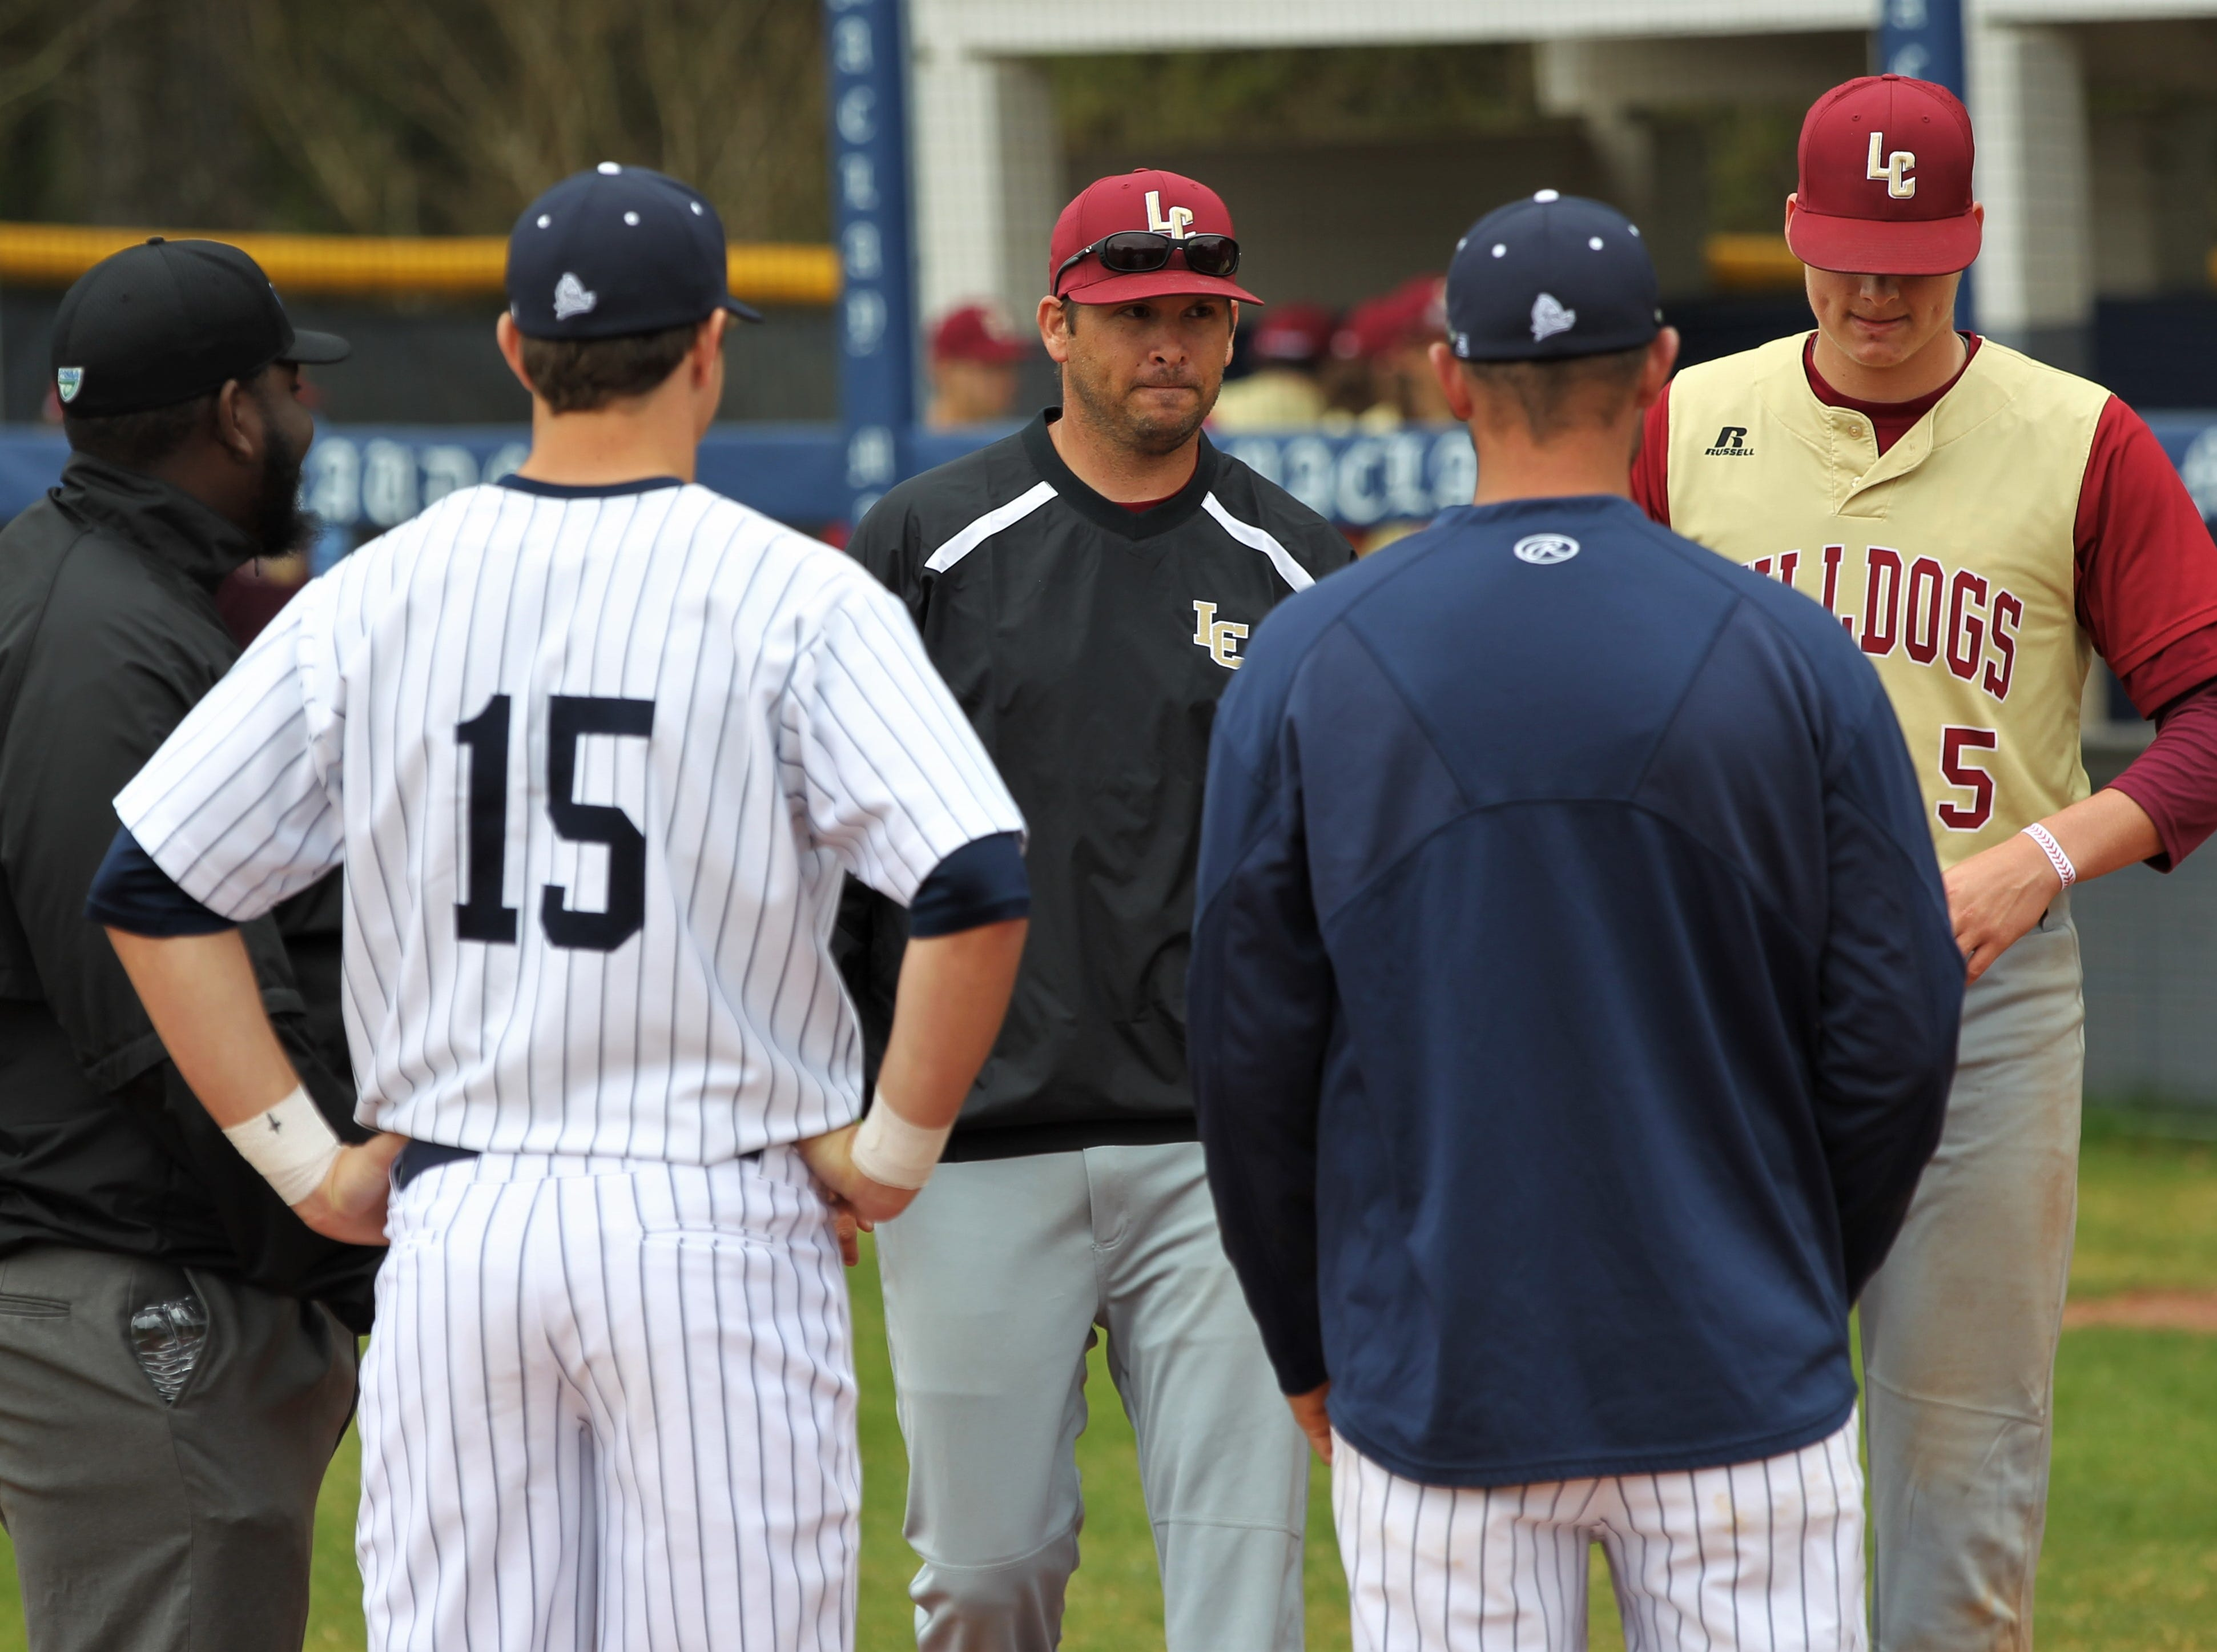 Liberty County coach Mannie Stafford and senior Brice Dillmore (5) meet Maclay coach Drew Sherrod and senior Jason Norris (15) at home plate before a game. Liberty County's baseball team went on the road to beat Maclay 8-2 on Saturday, March 16, 2019. The Bulldogs played their first game following their head coach Corey Crum's tragic death six days ago.